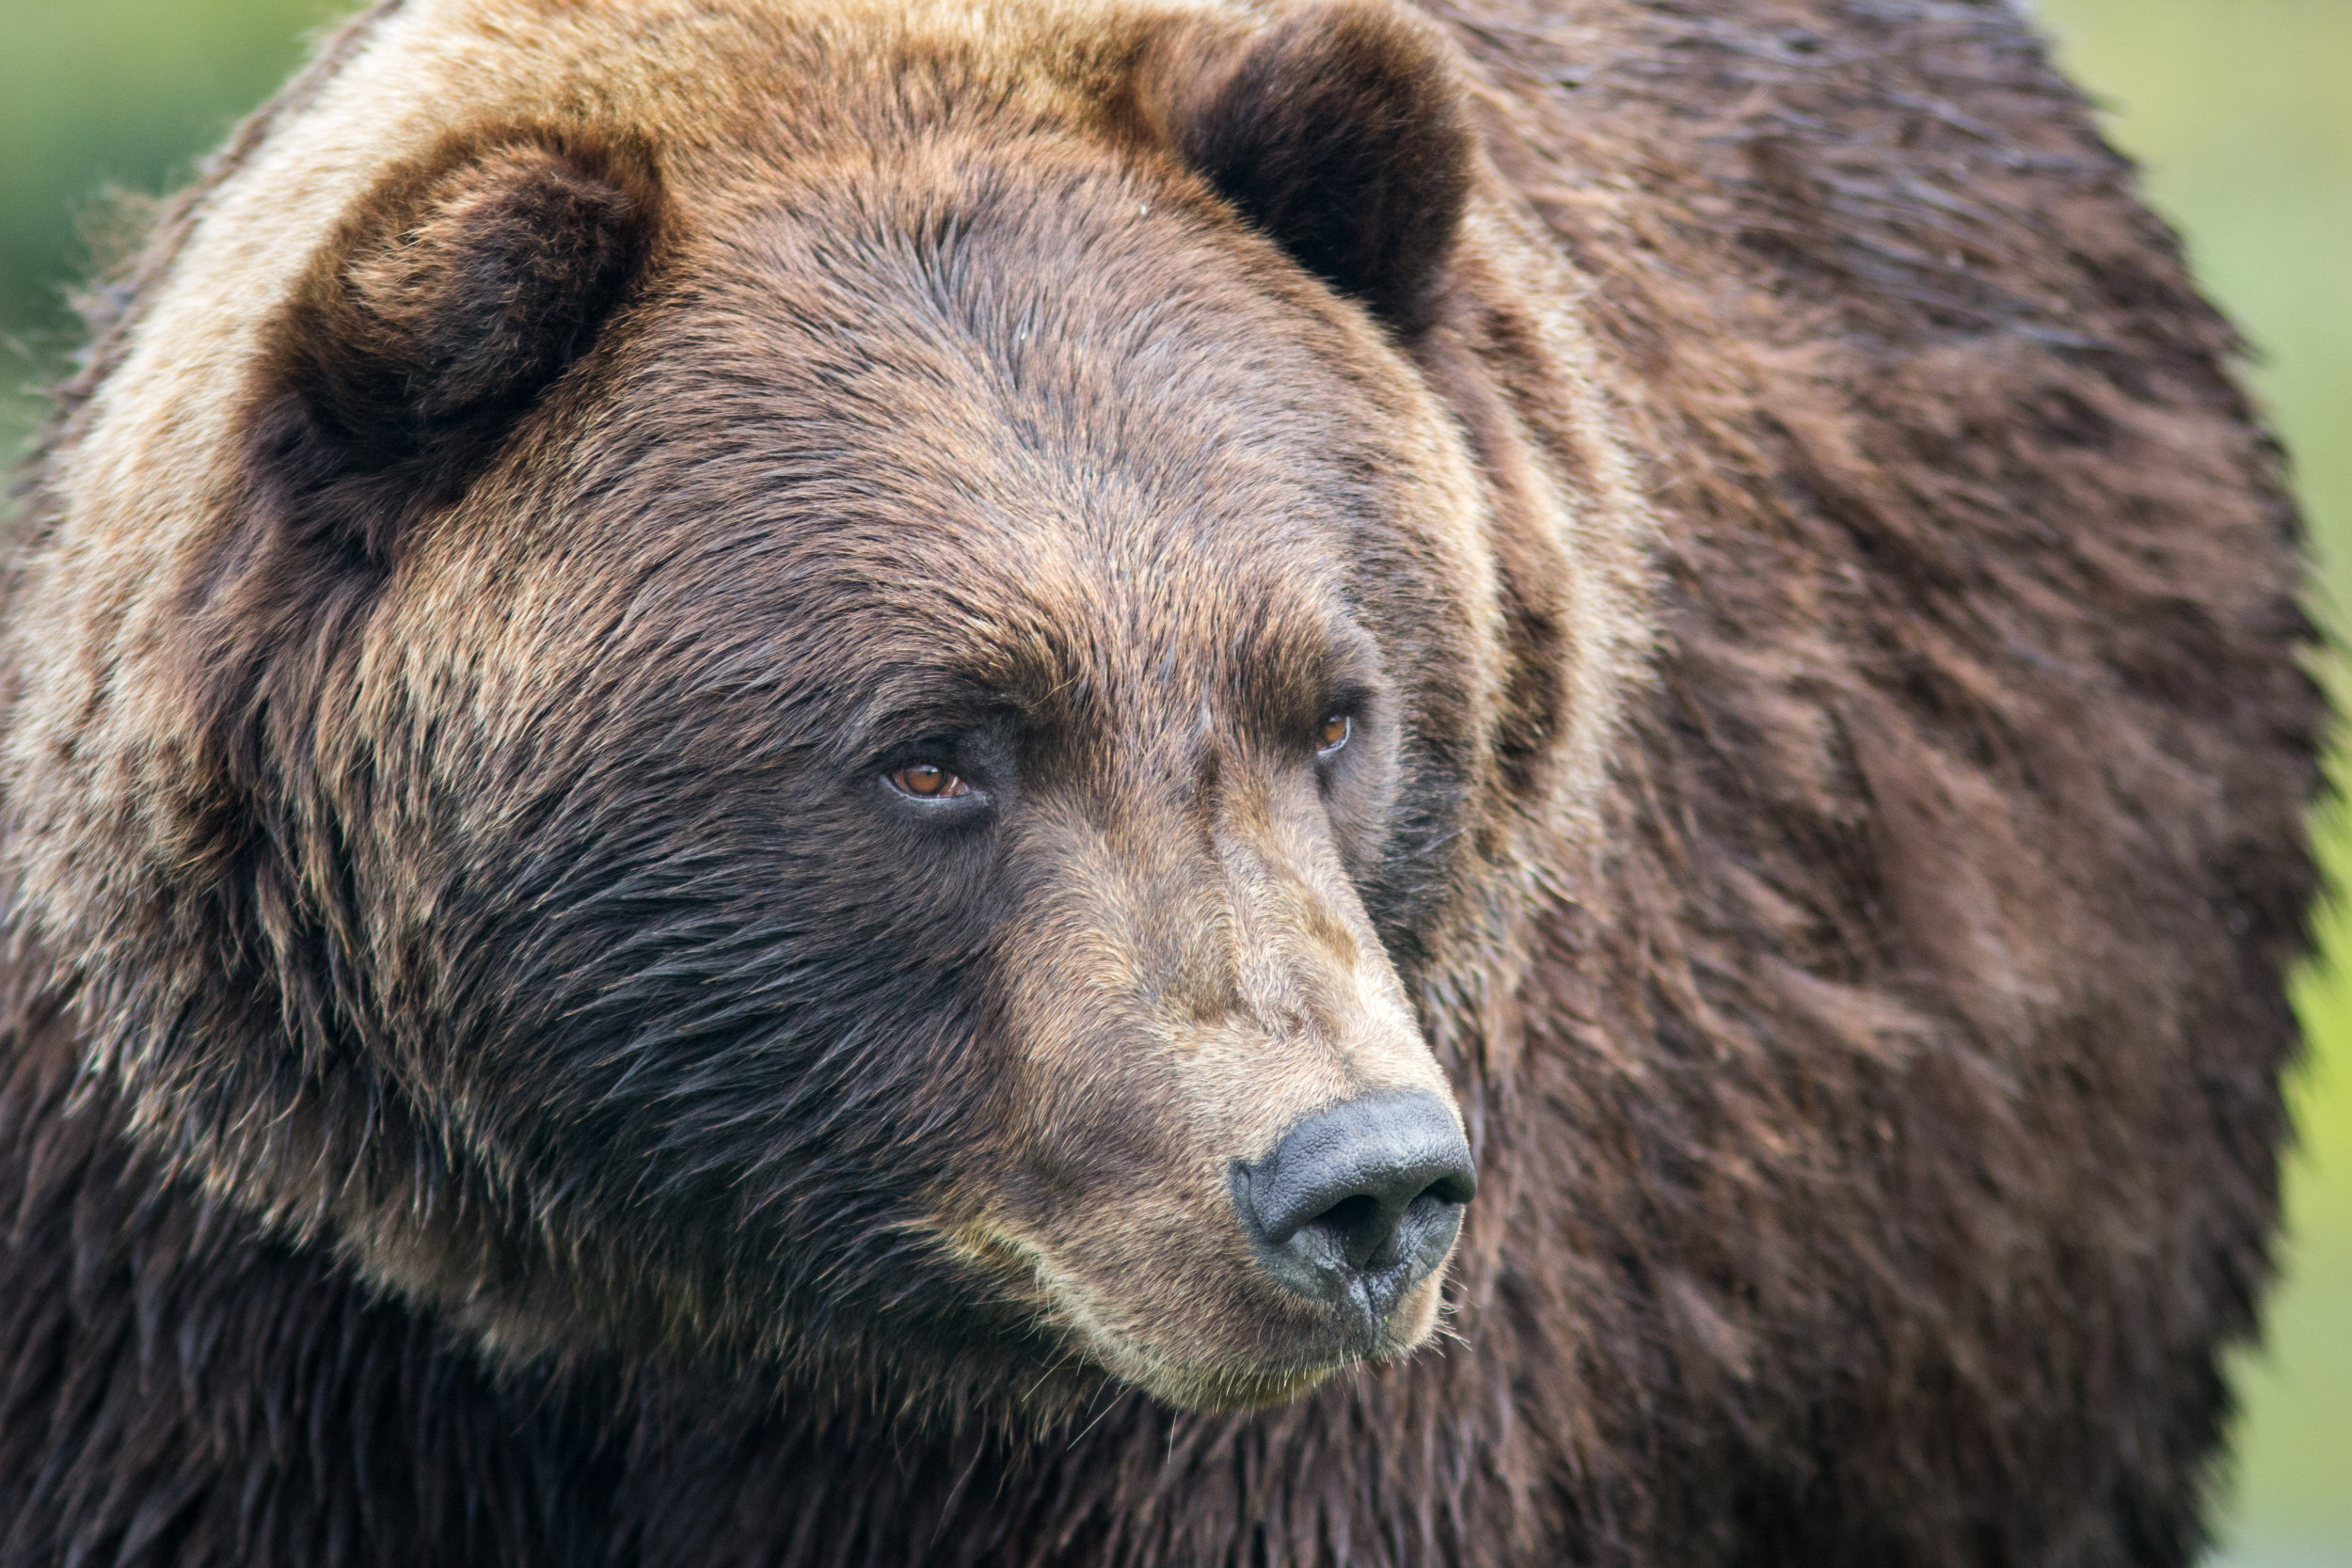 Grizzly Bear That Attacked Man Near Yellowstone 'Chomped Up' Victim's Hand